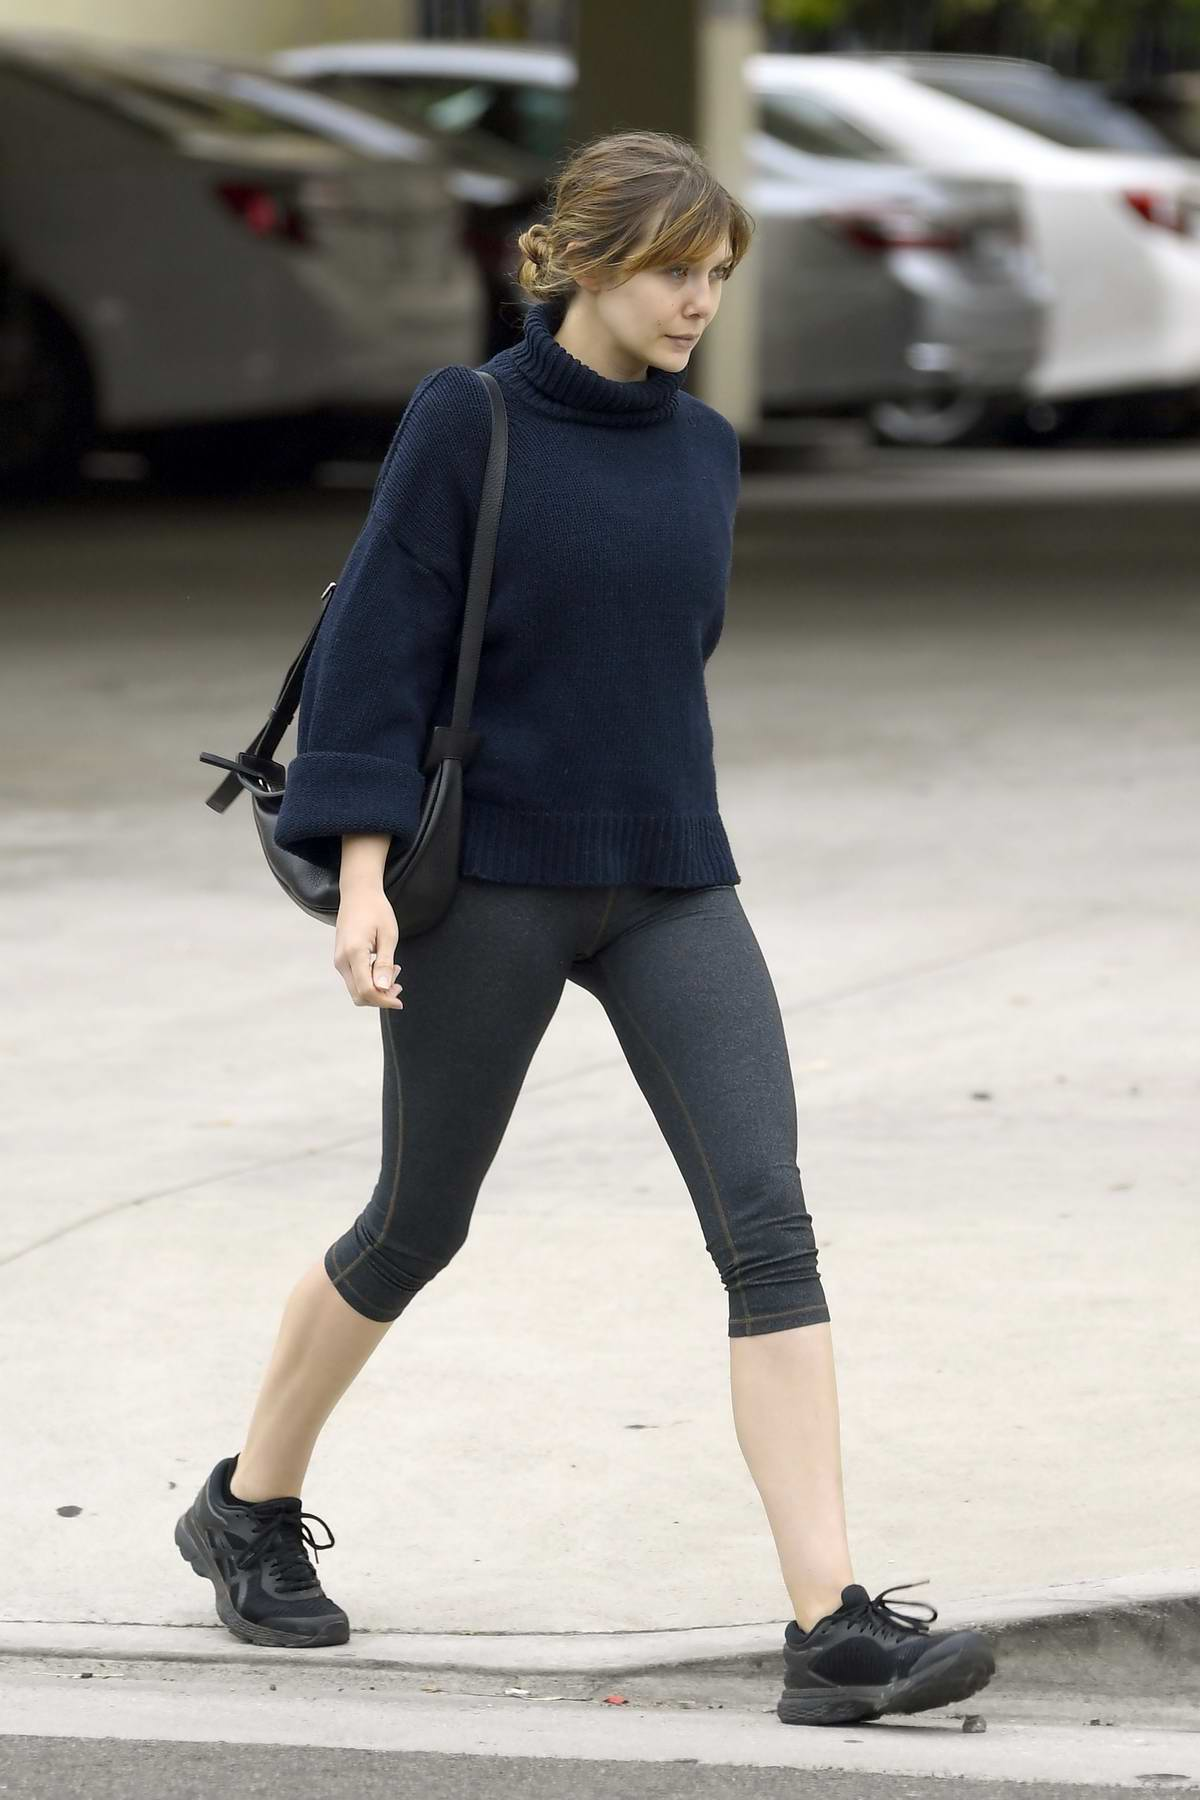 Elizabeth Olsen wears a navy blue turtleneck sweater and grey leggings as she leaves the gym in Los Angeles